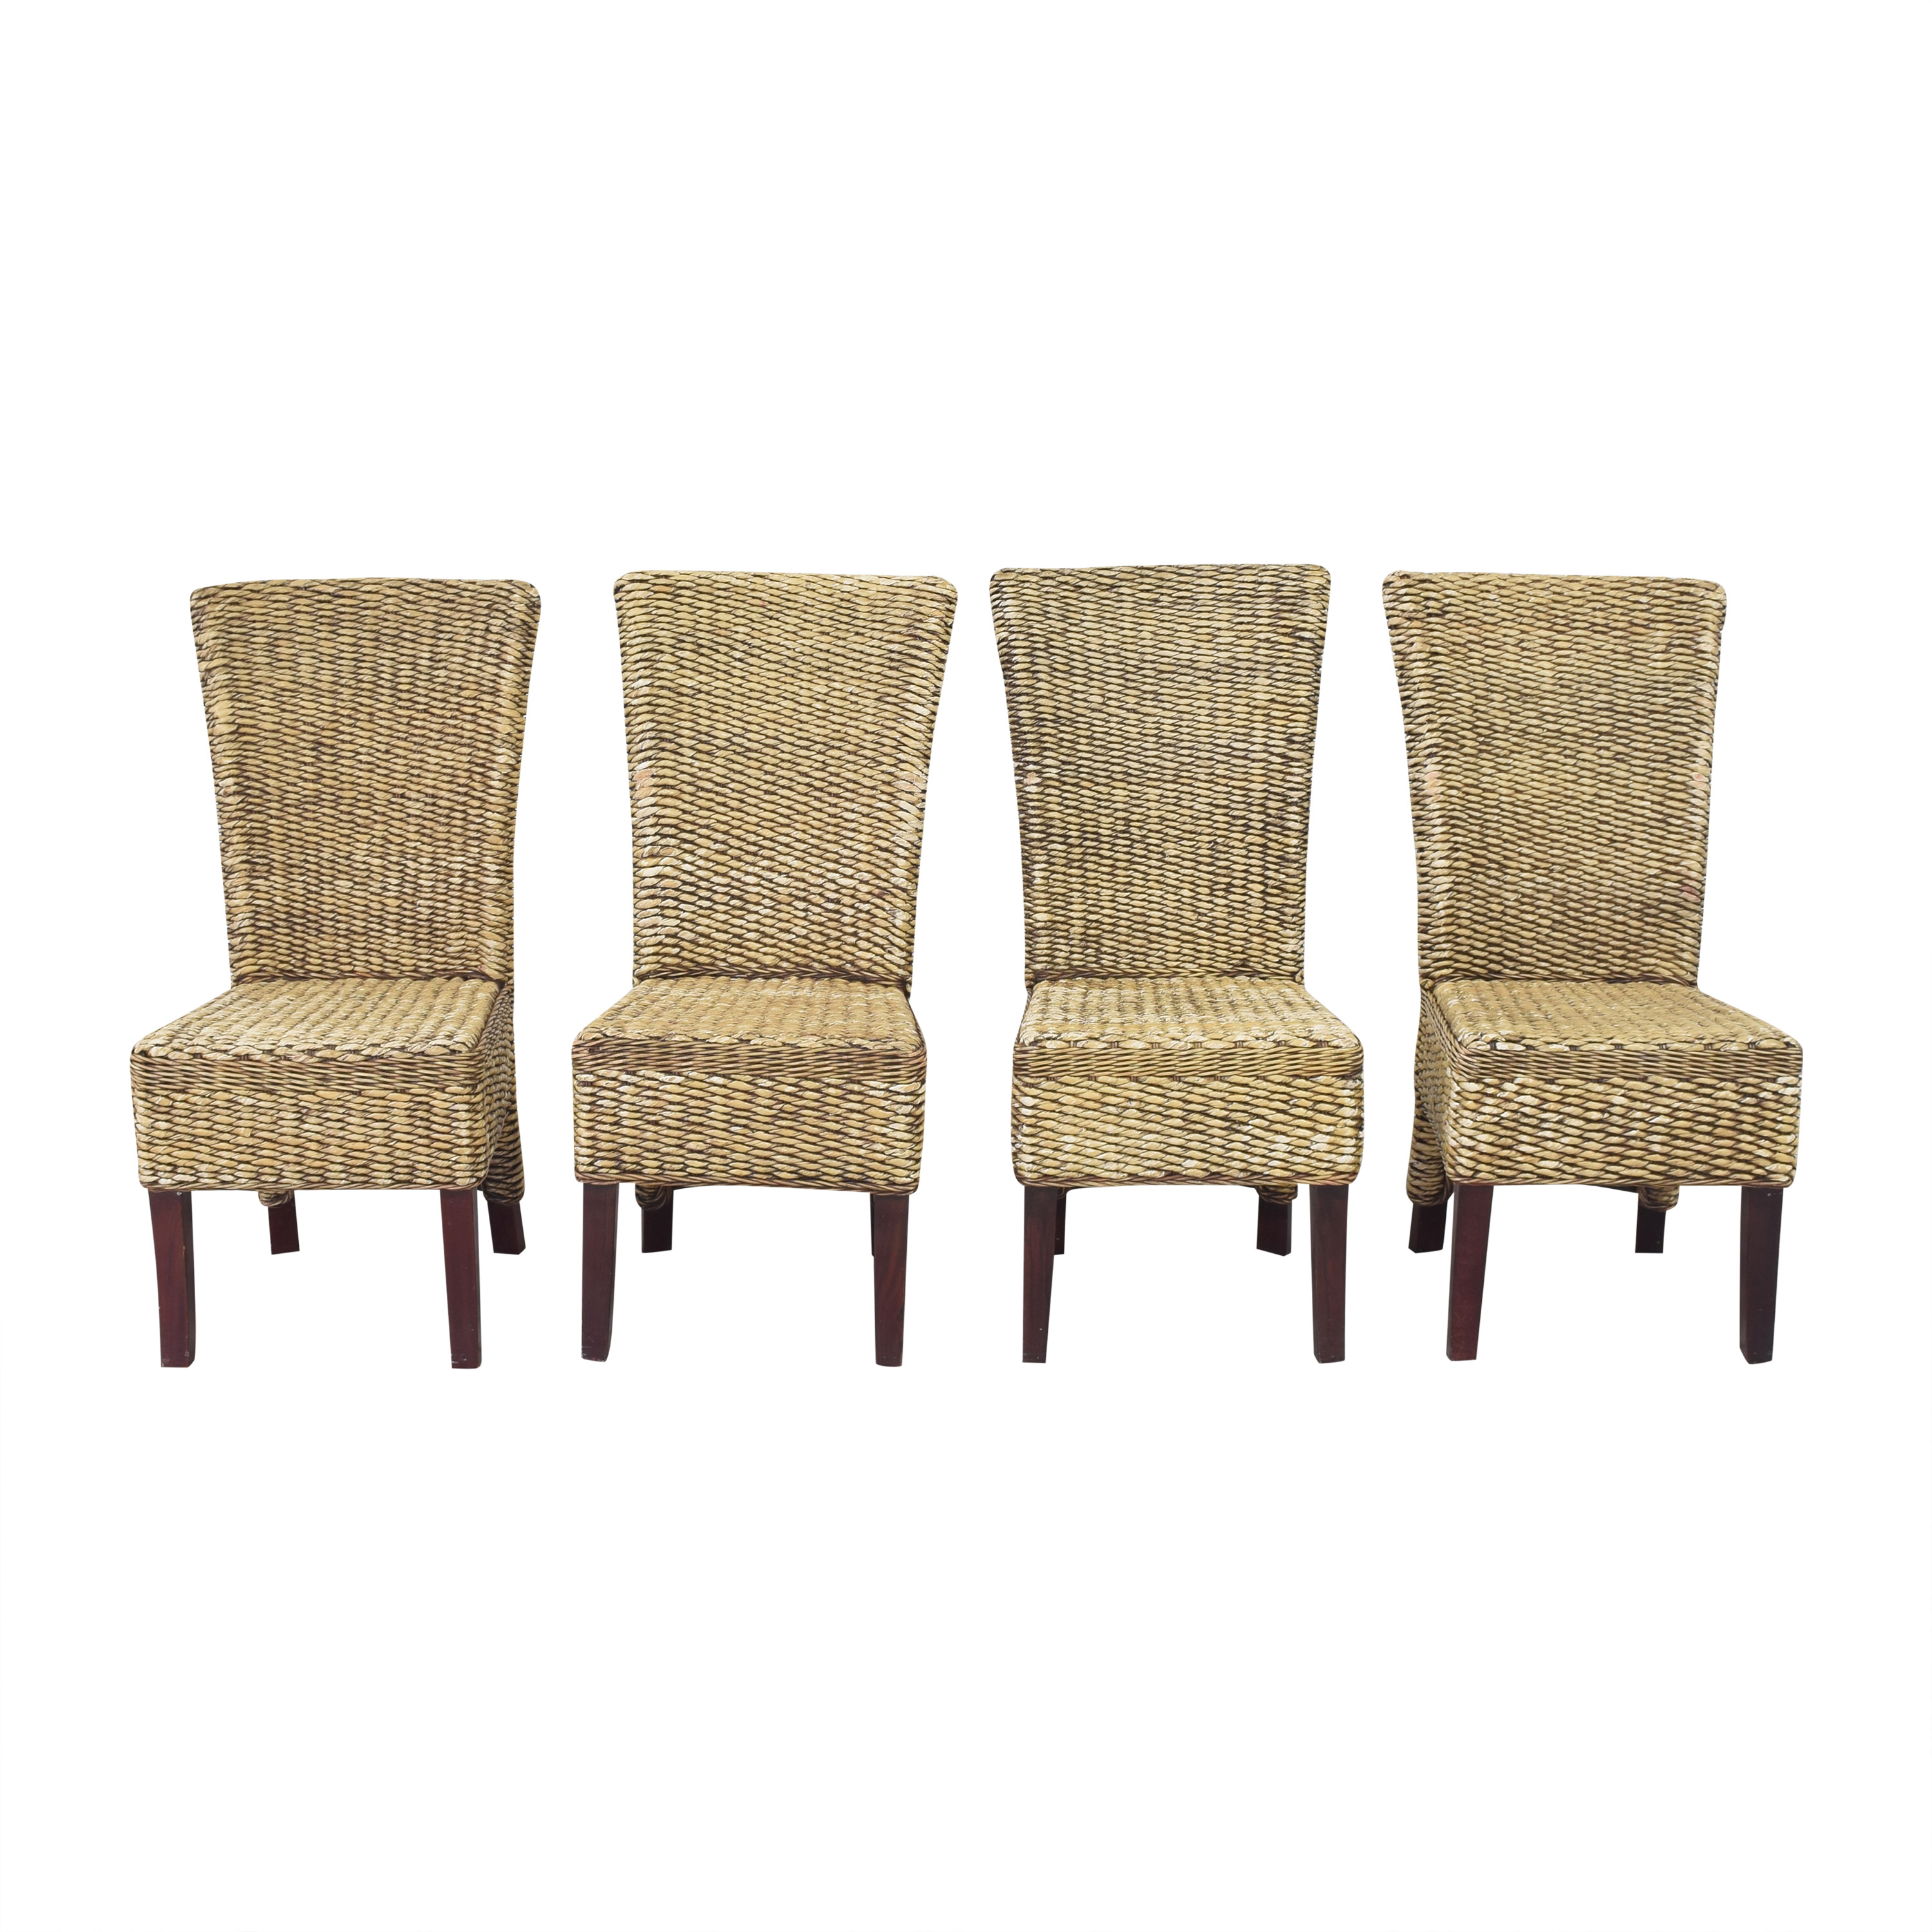 shop Serena & Lily Dining Chairs Serena & Lily Chairs